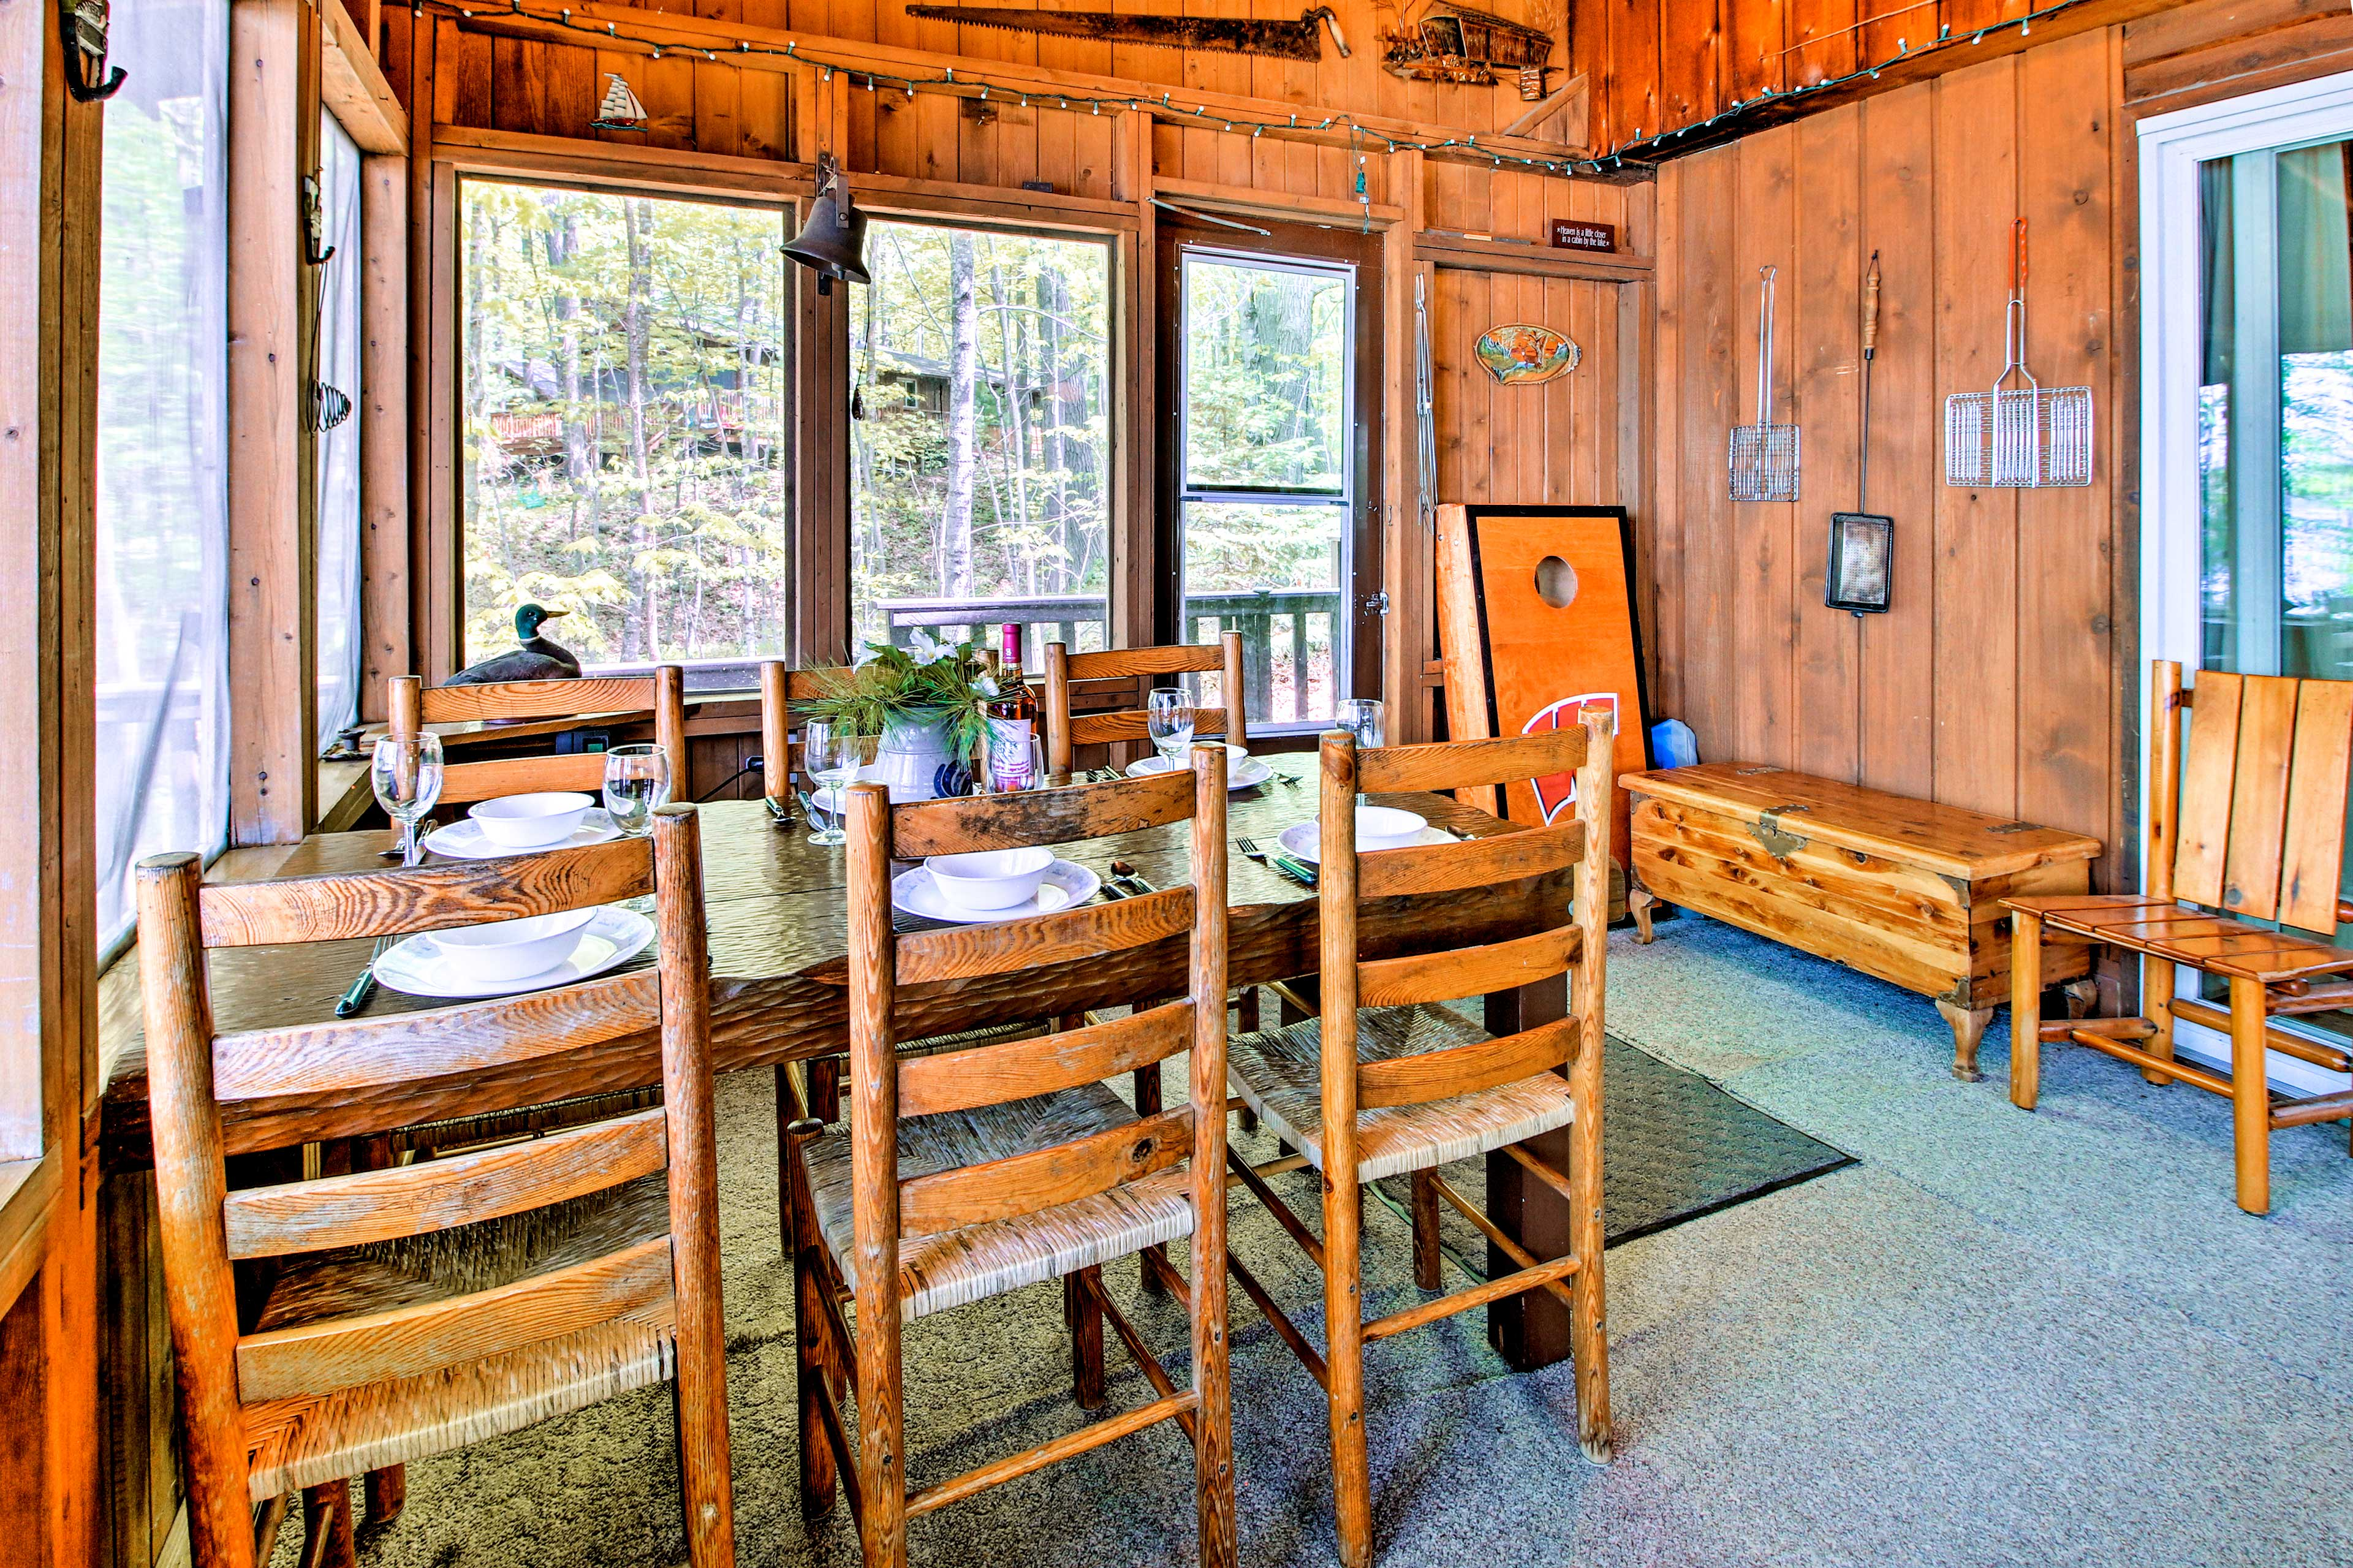 Dine with lake views at this table for 6.